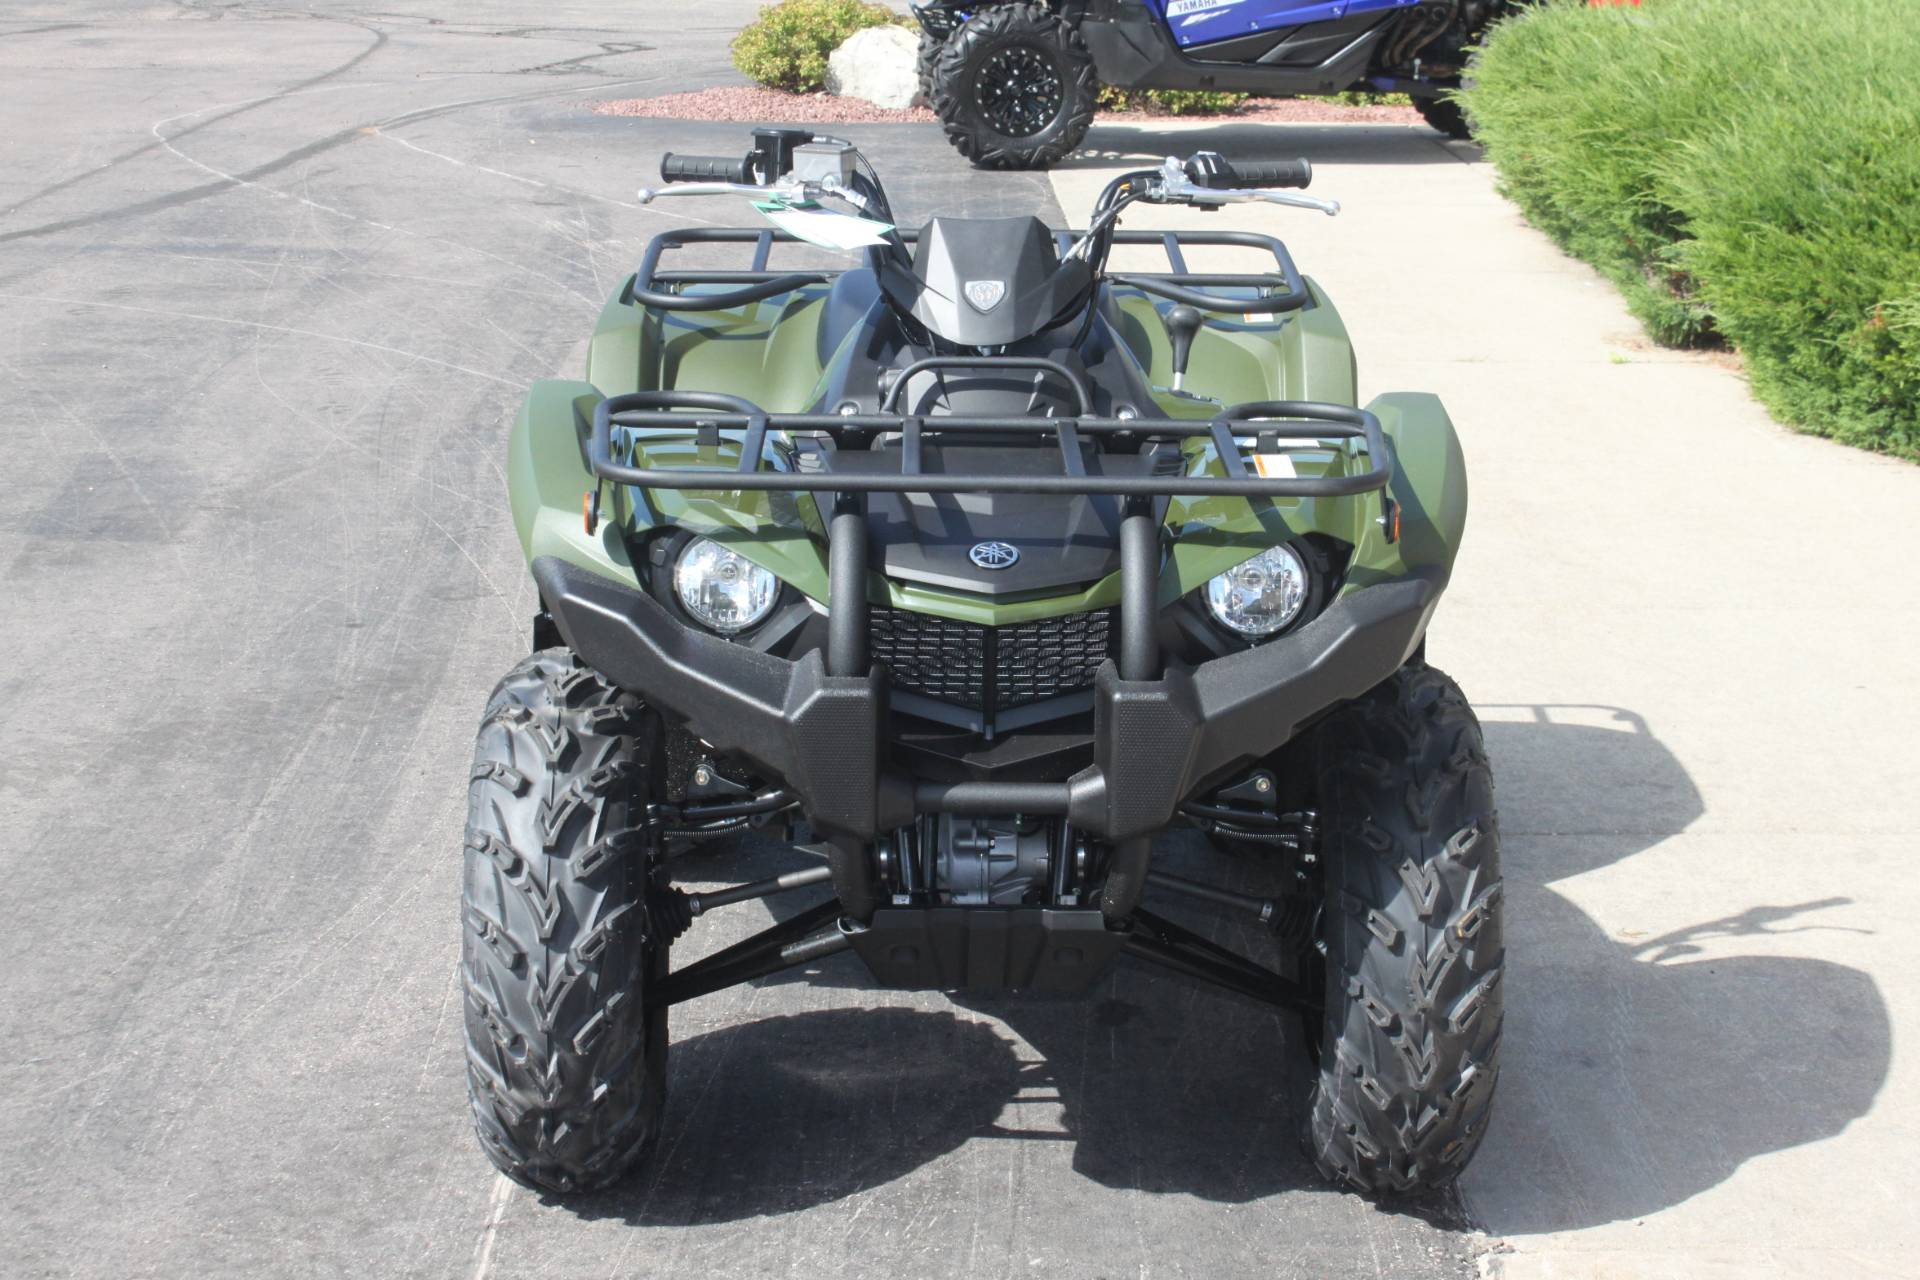 2020 Yamaha Kodiak 450 in Janesville, Wisconsin - Photo 3